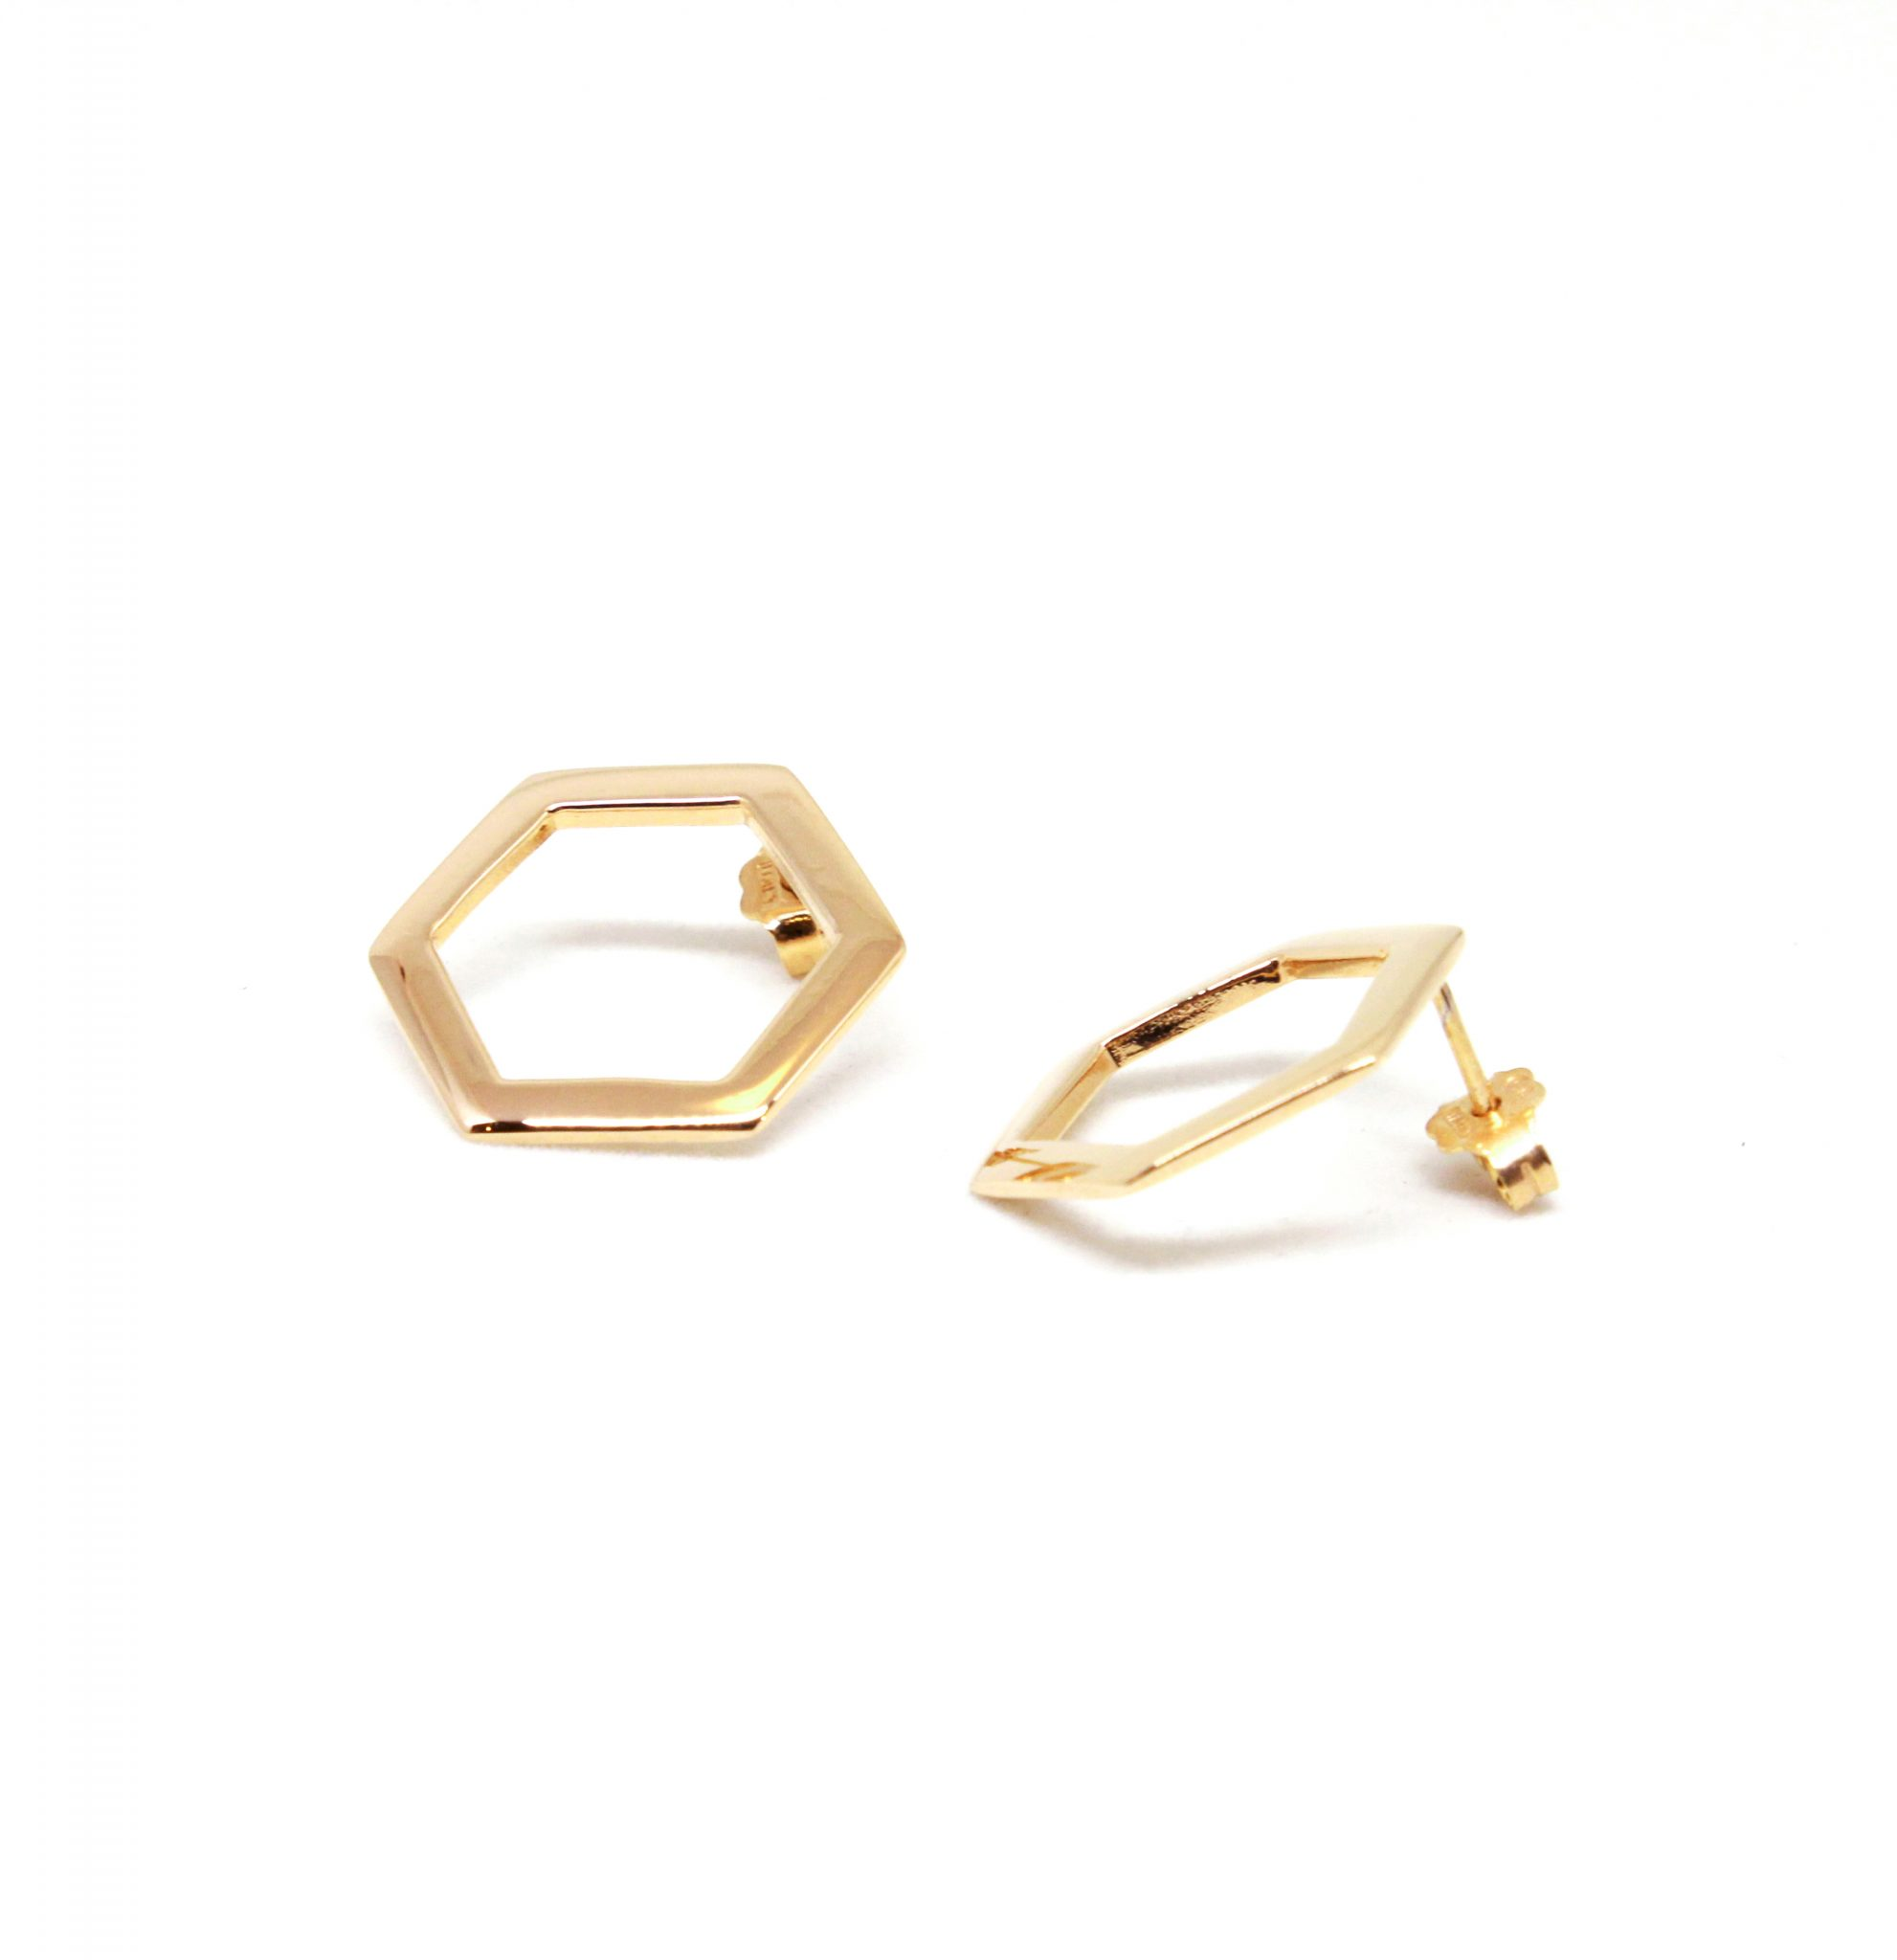 hexagon fullxfull au il listing zoom earrings